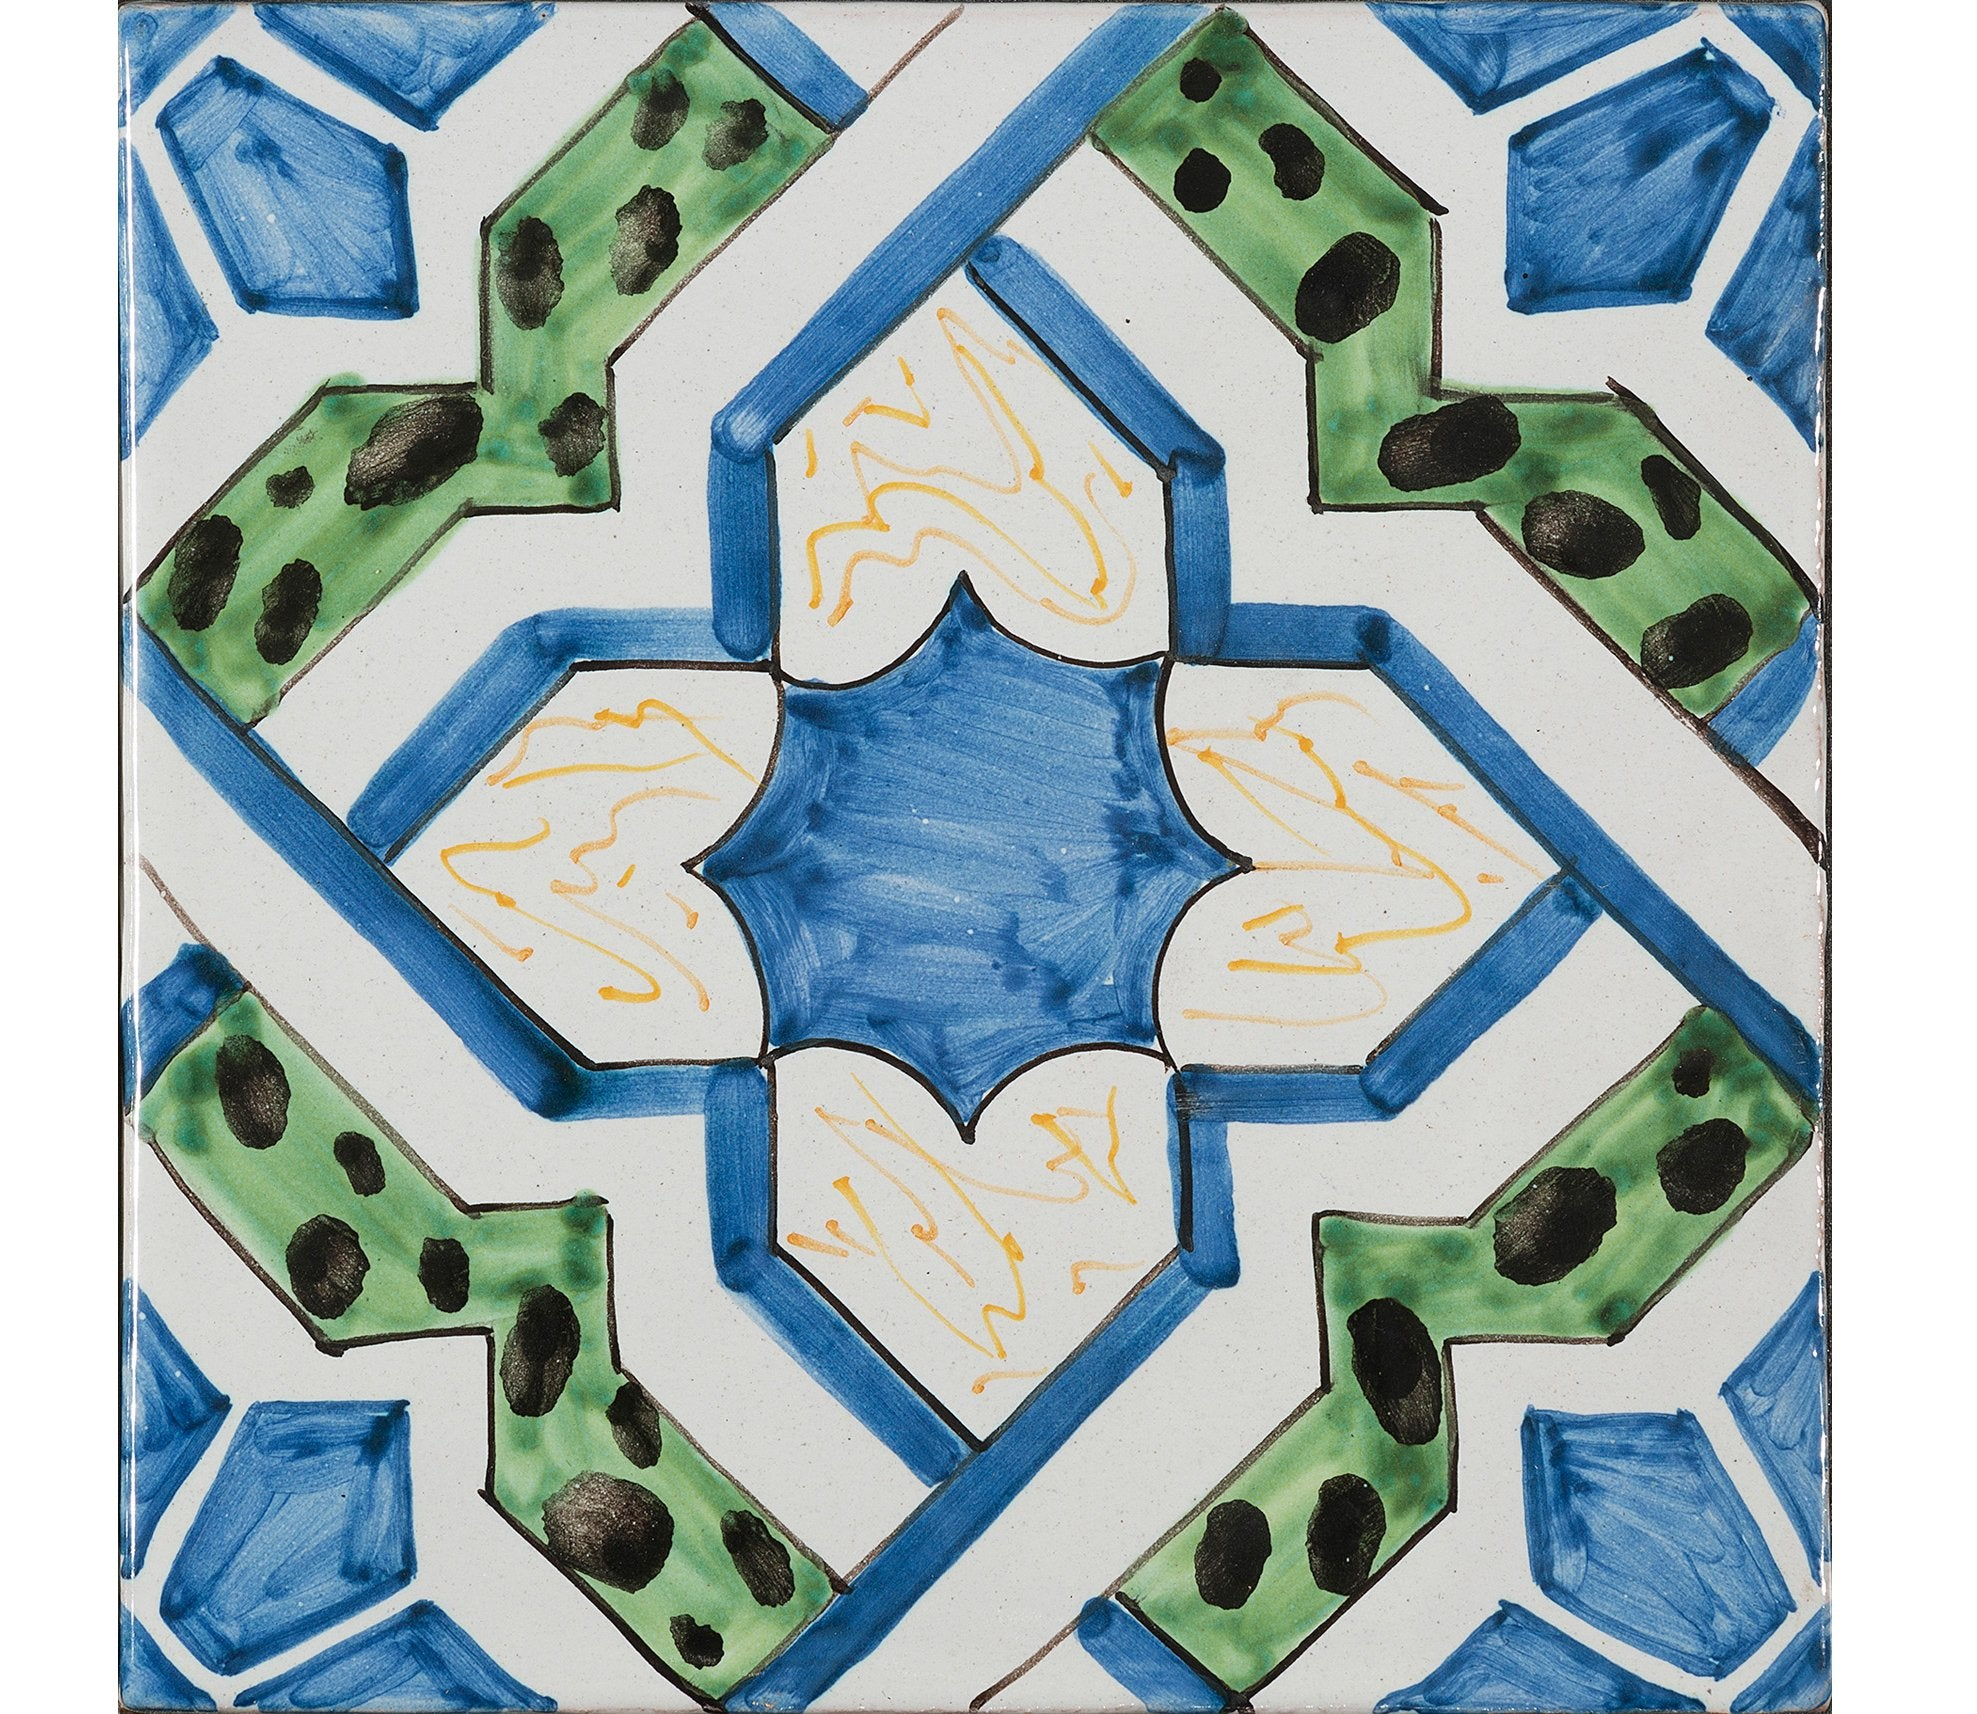 Series S Handpainted Tiles Product Image 33